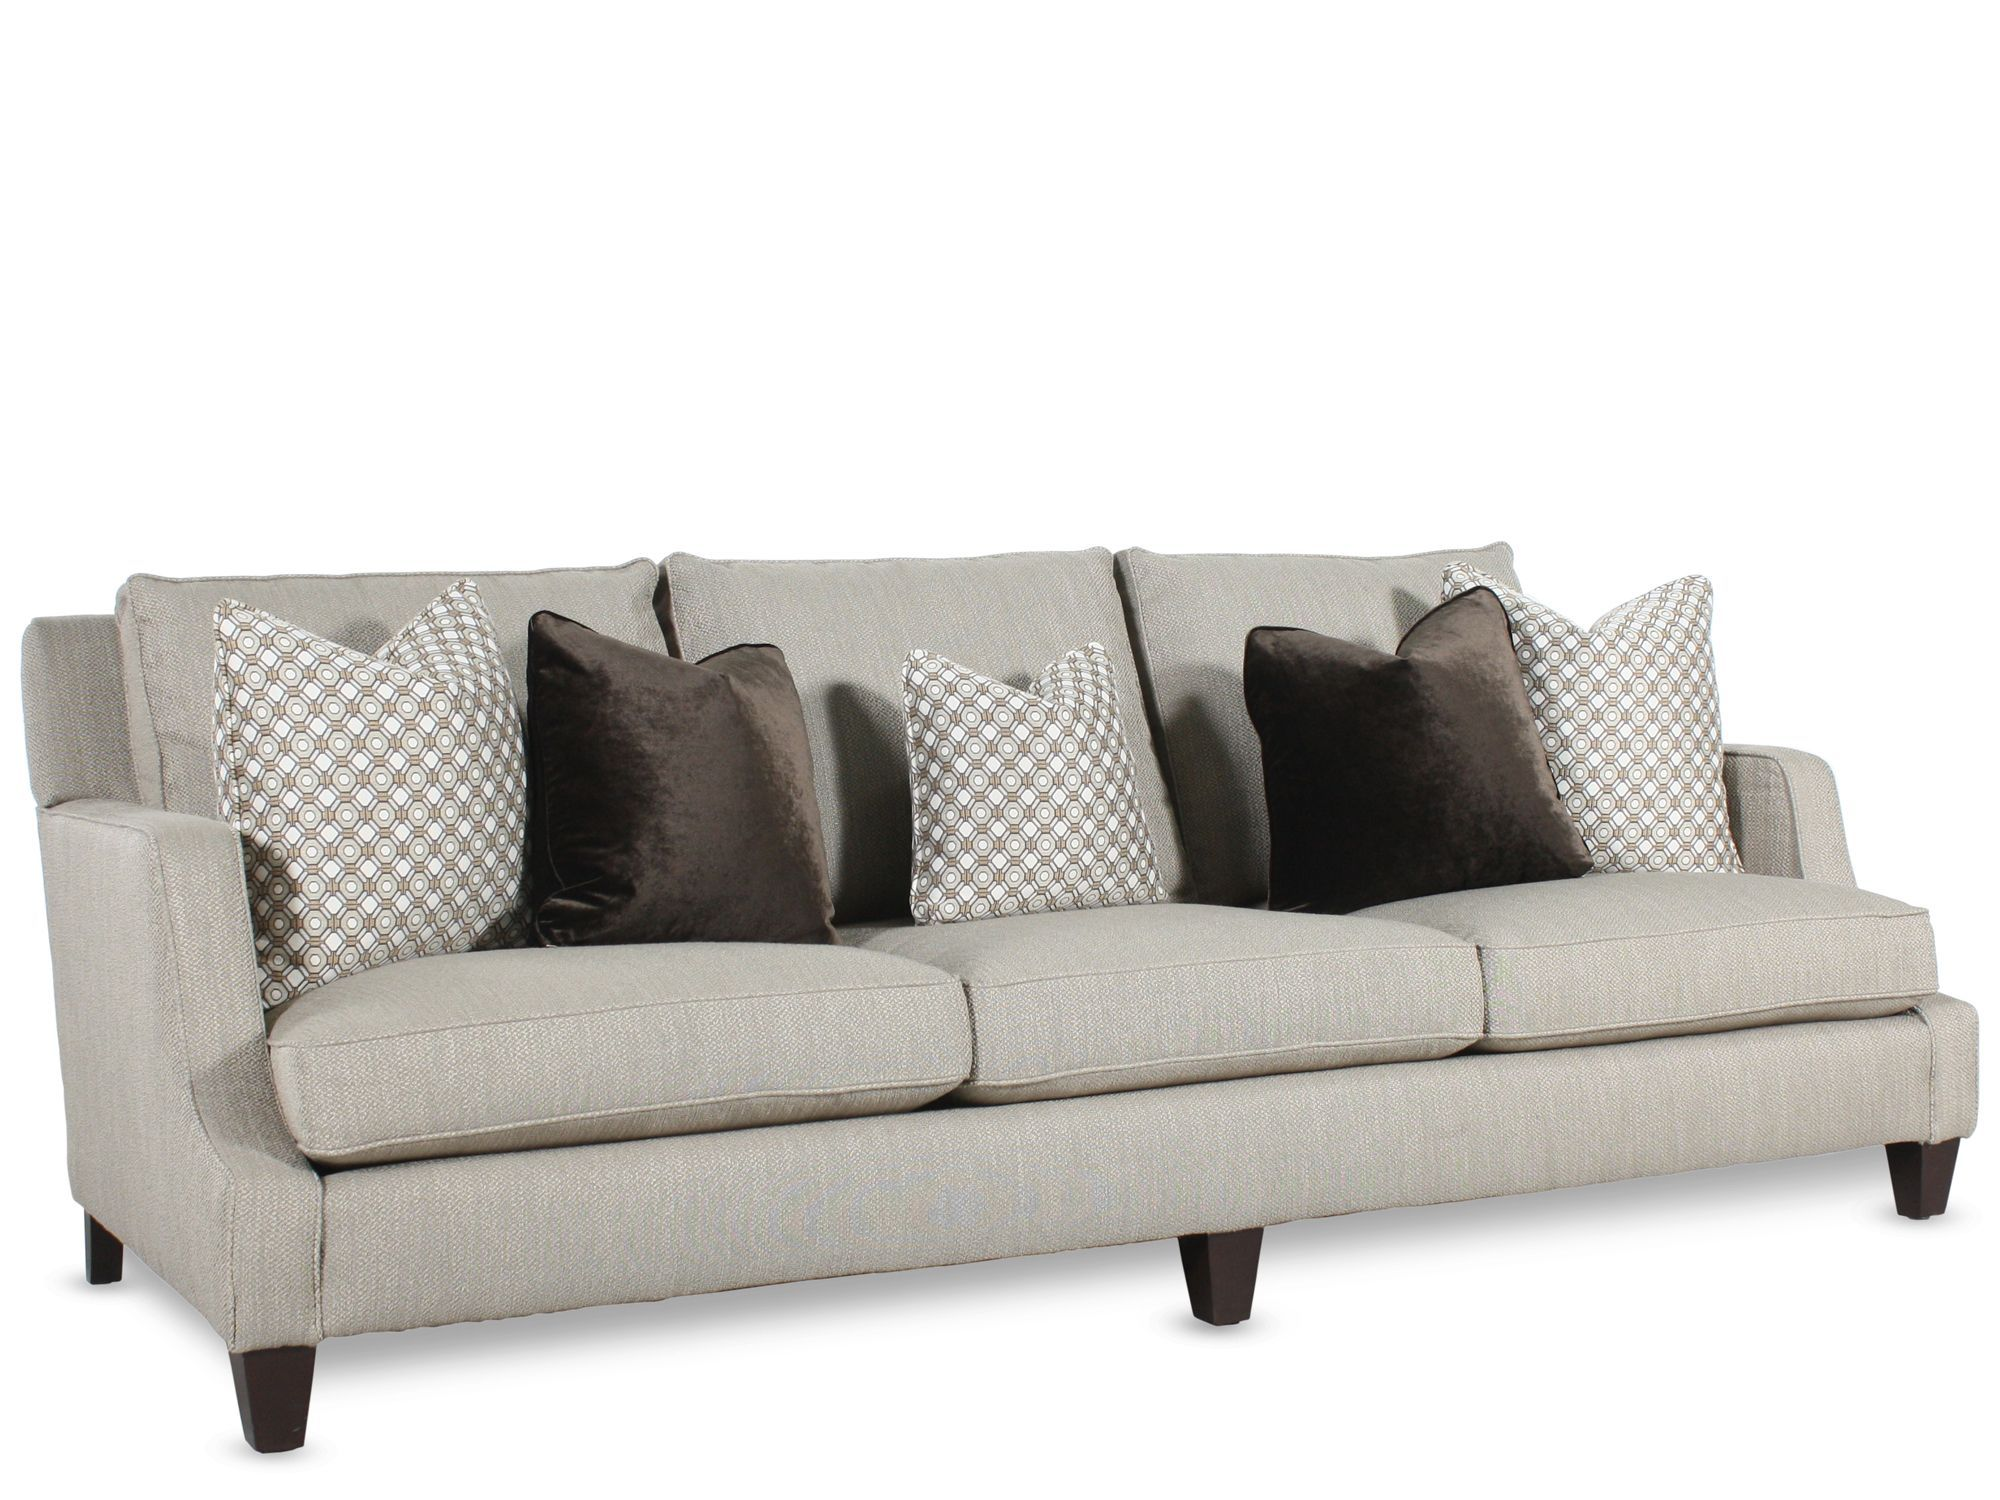 Bernhardt jackie sofa mathis brothers ideas for the for Mathis brothers living room furniture sectional sofas